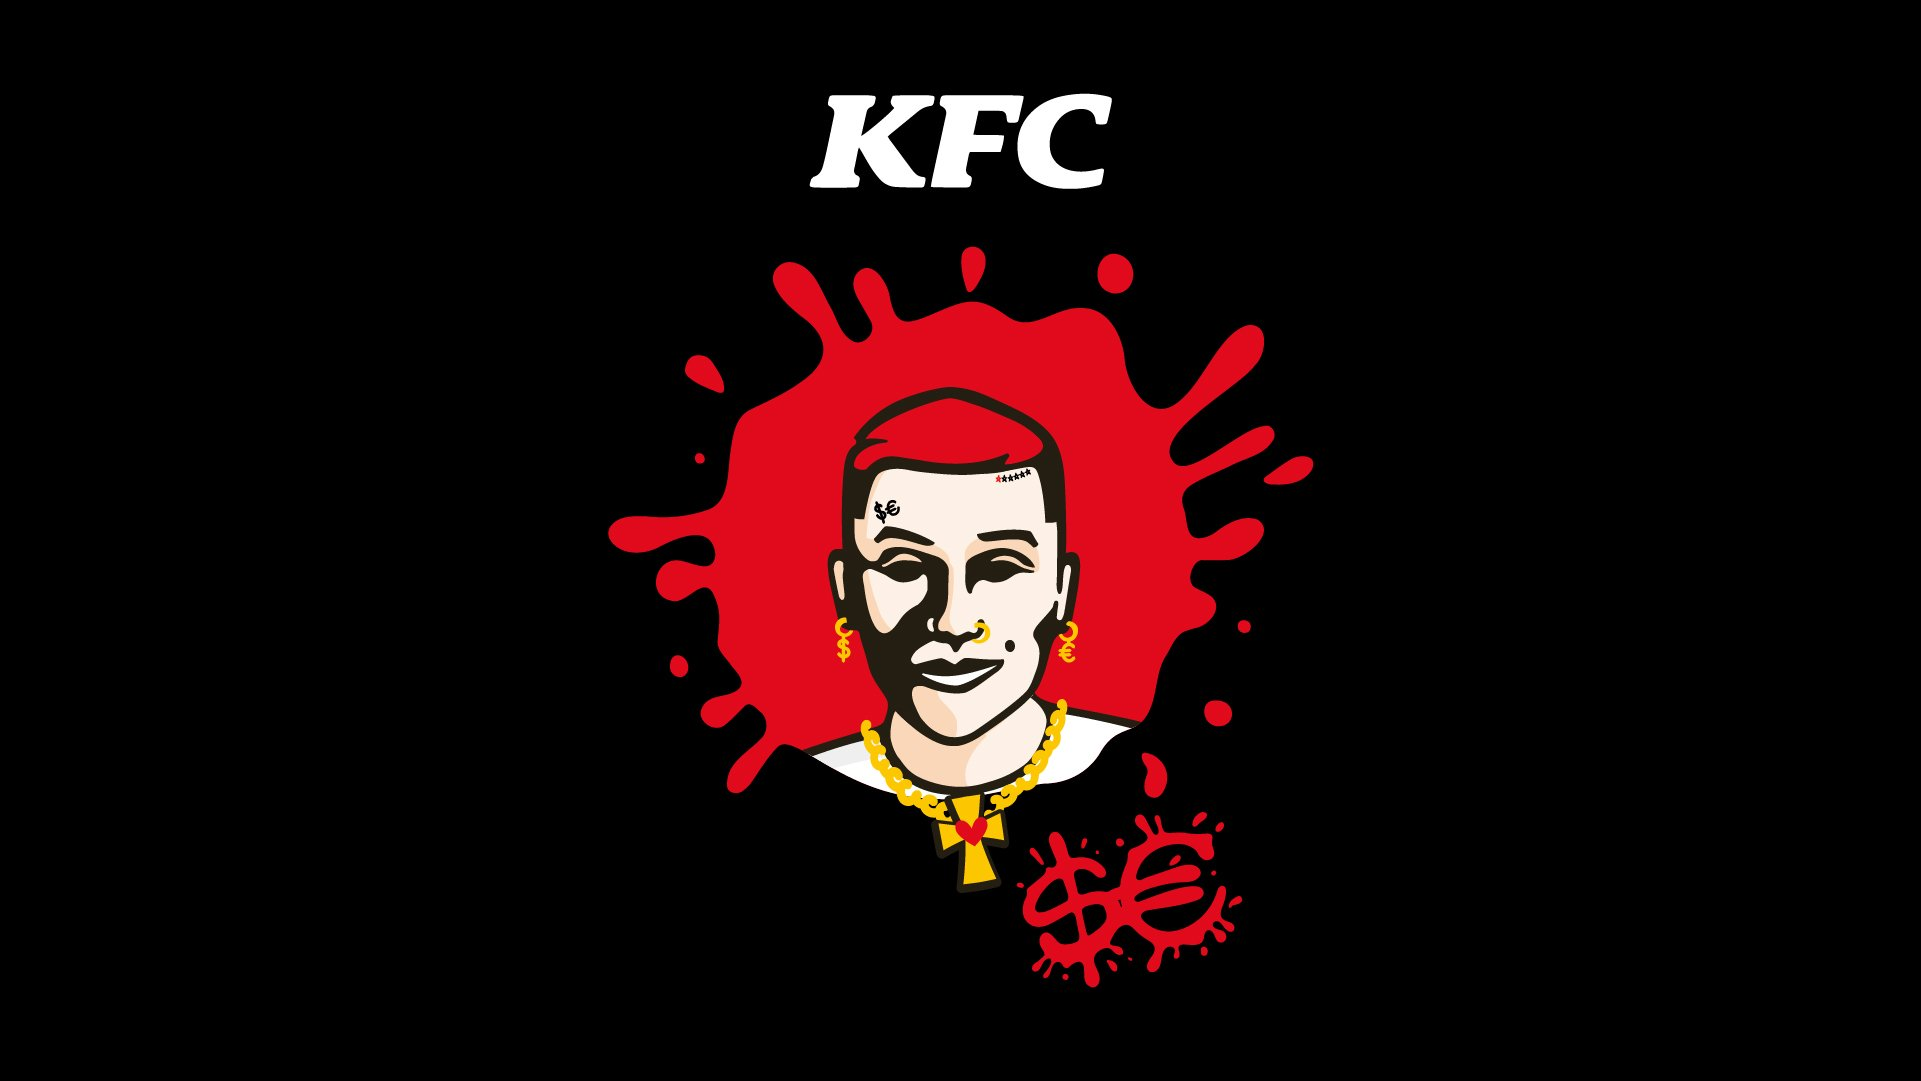 SFERA KFC MERCH 2020 graphics slider 01